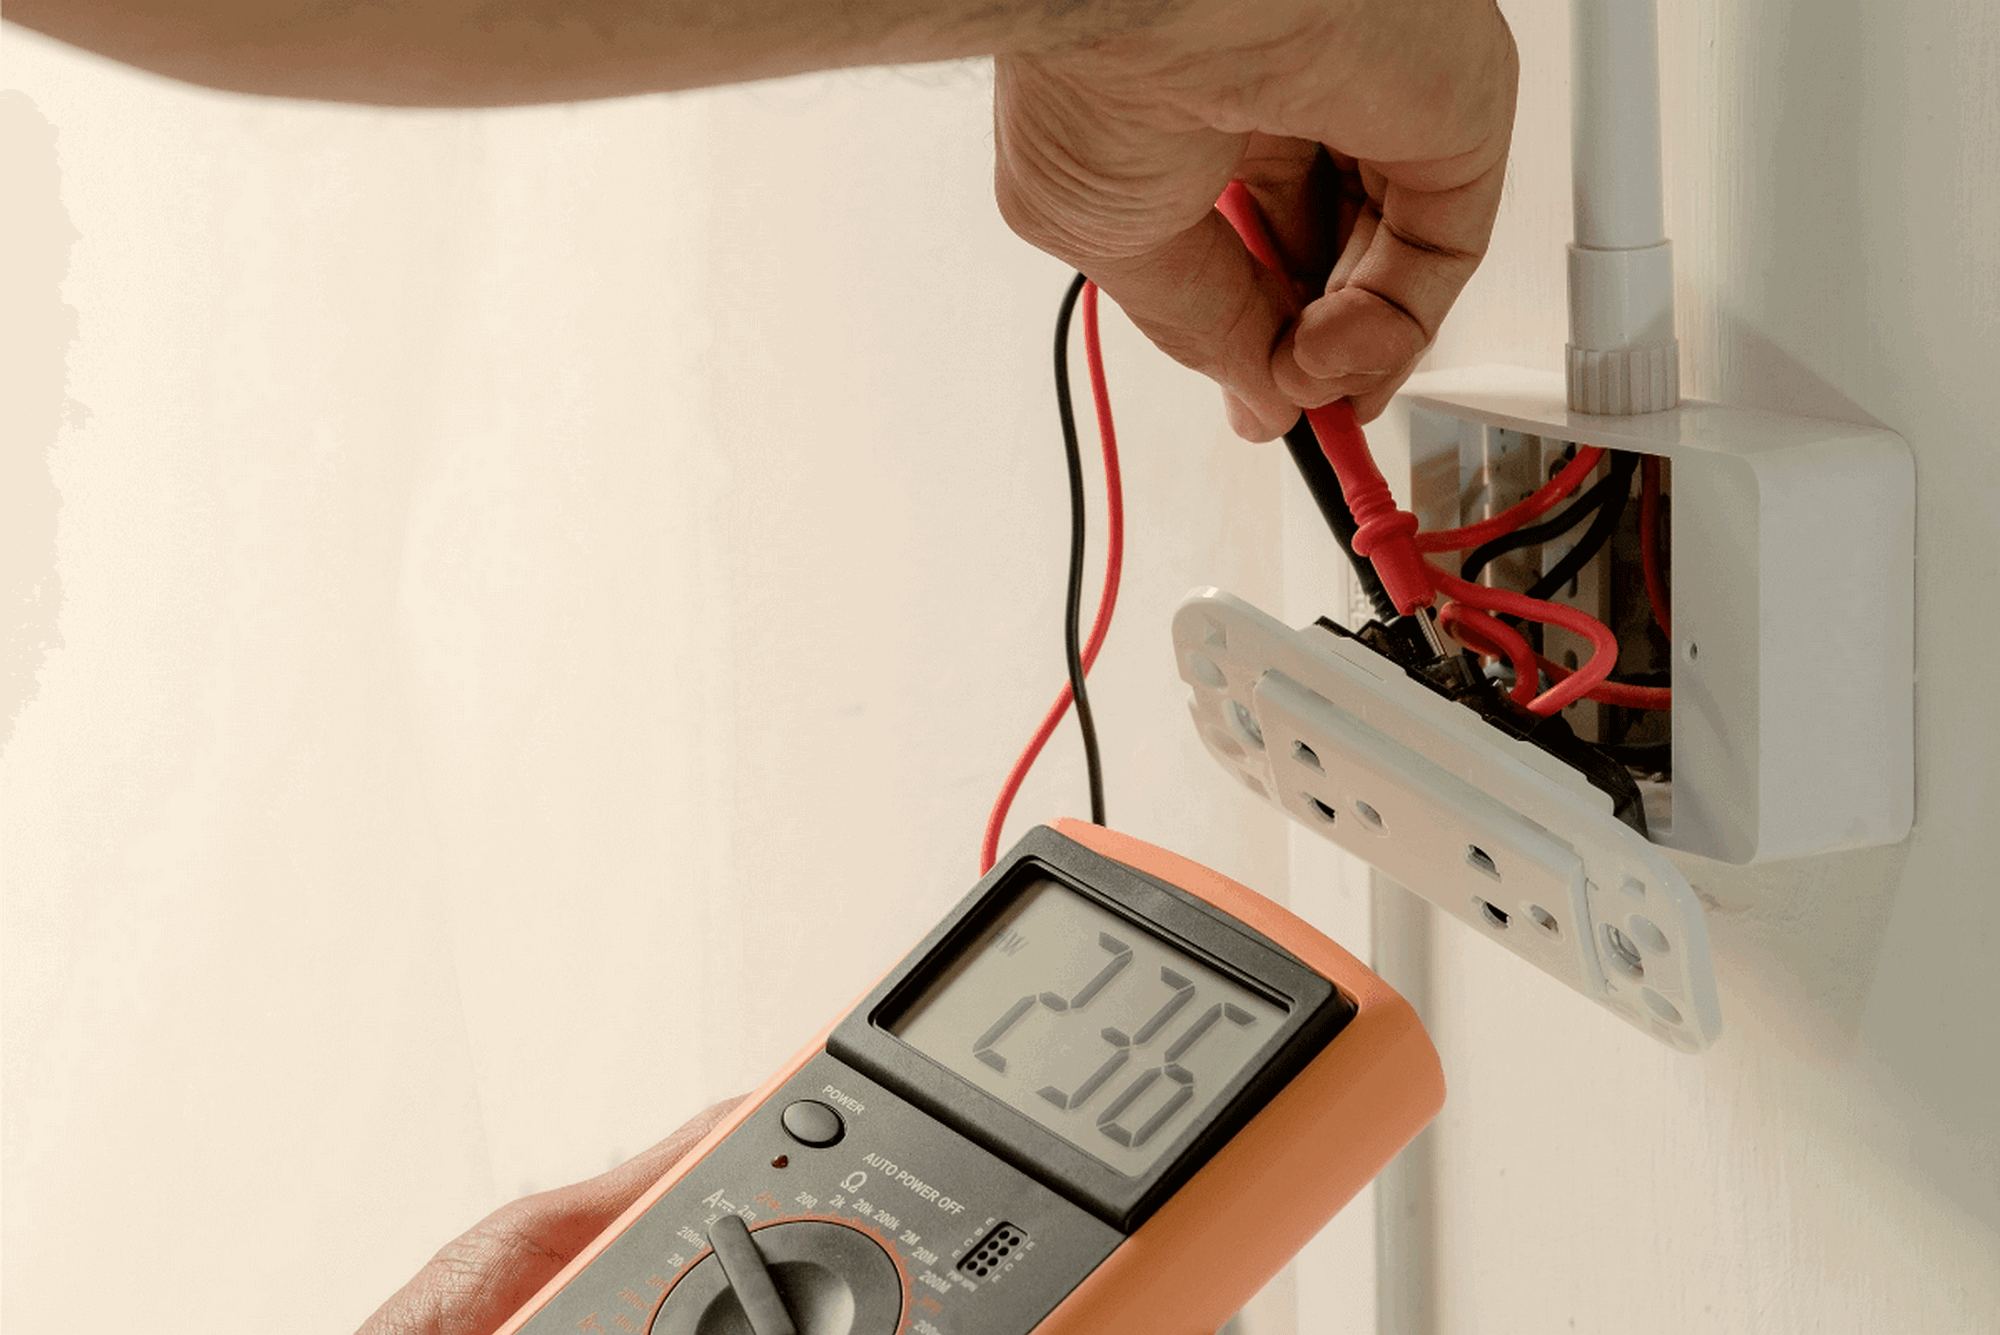 What you should know about electrical safety checks for your home